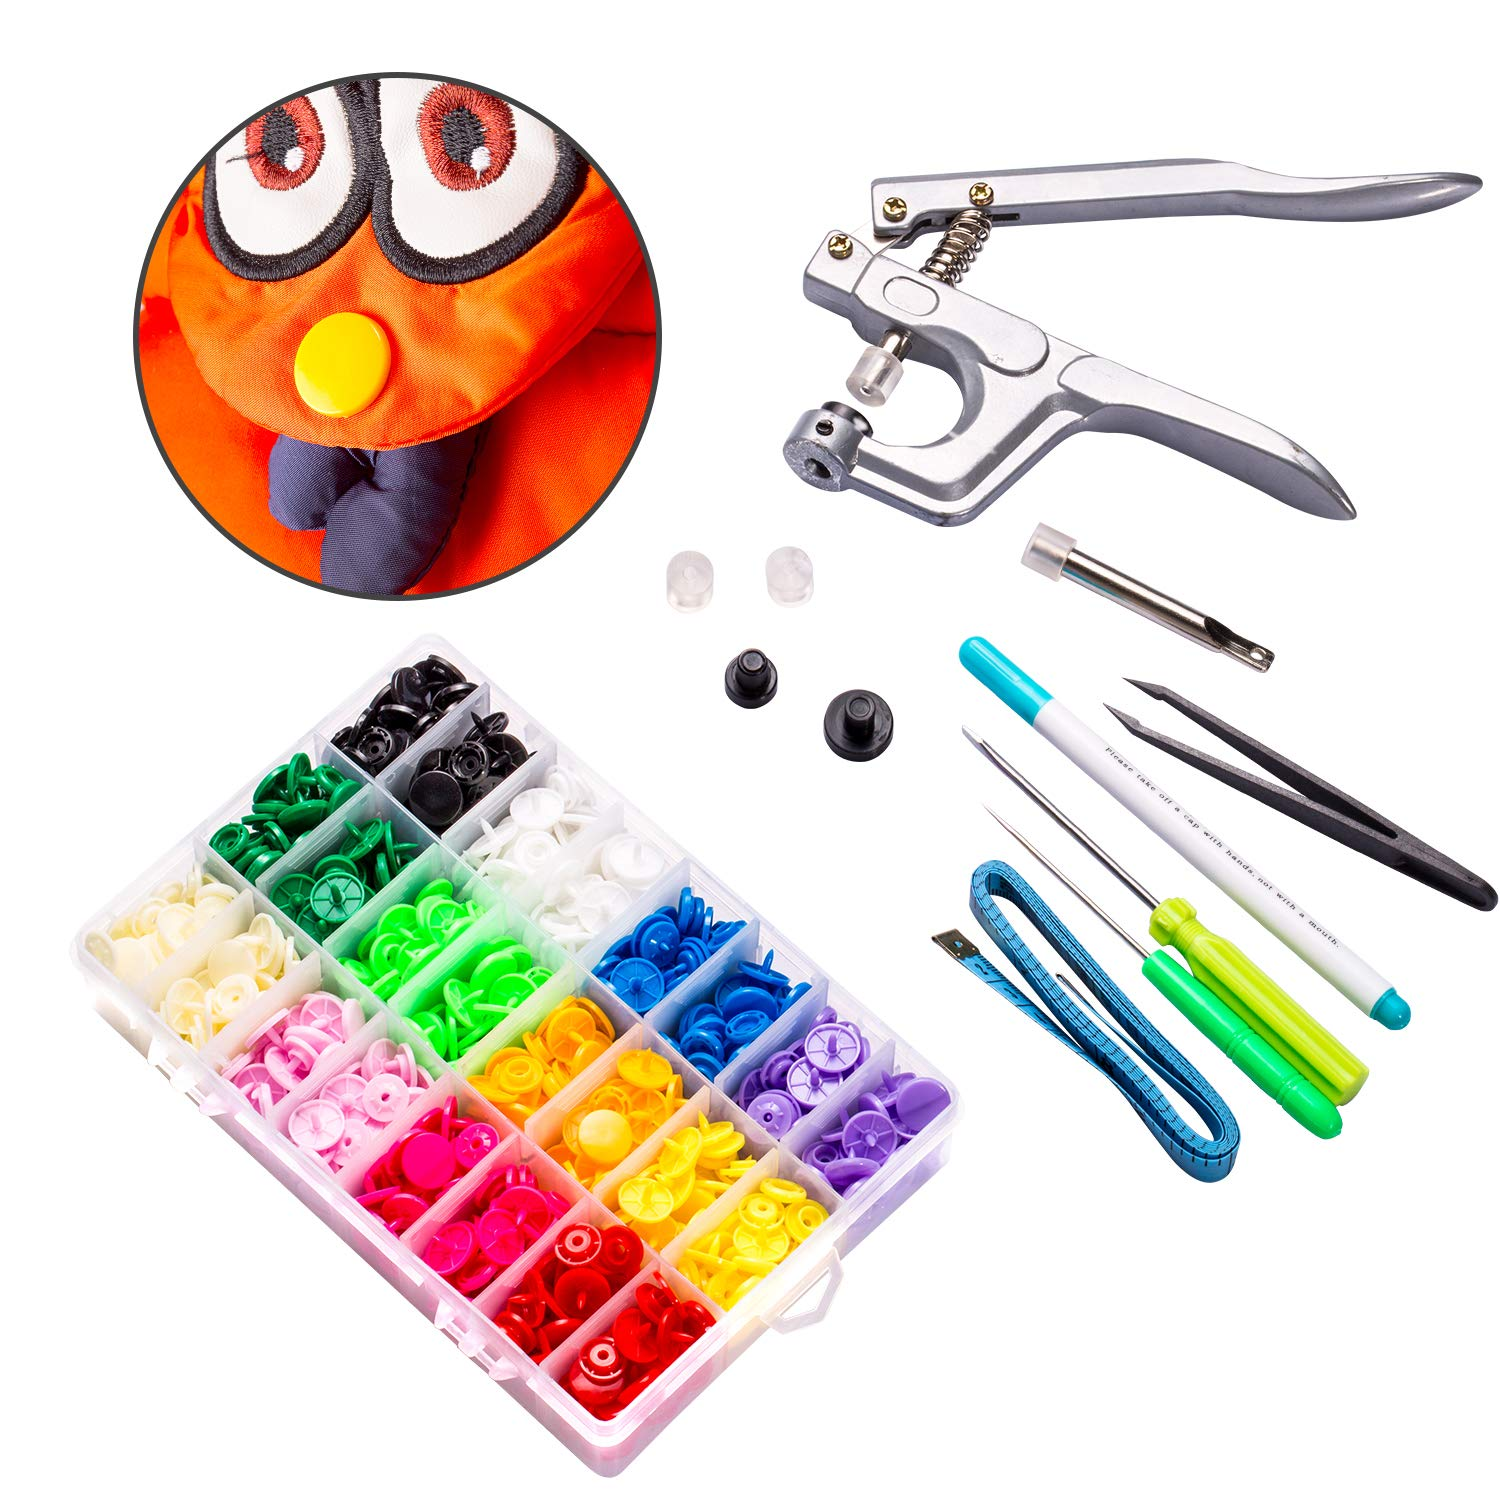 Lynda T8 Plastic Snap Fastener and Snap Pliers- Snap Fastener KIT with 240pcs Snap Buttons- for Diapers/Curtains/Kid's Clothes/Crafts by LYNDA